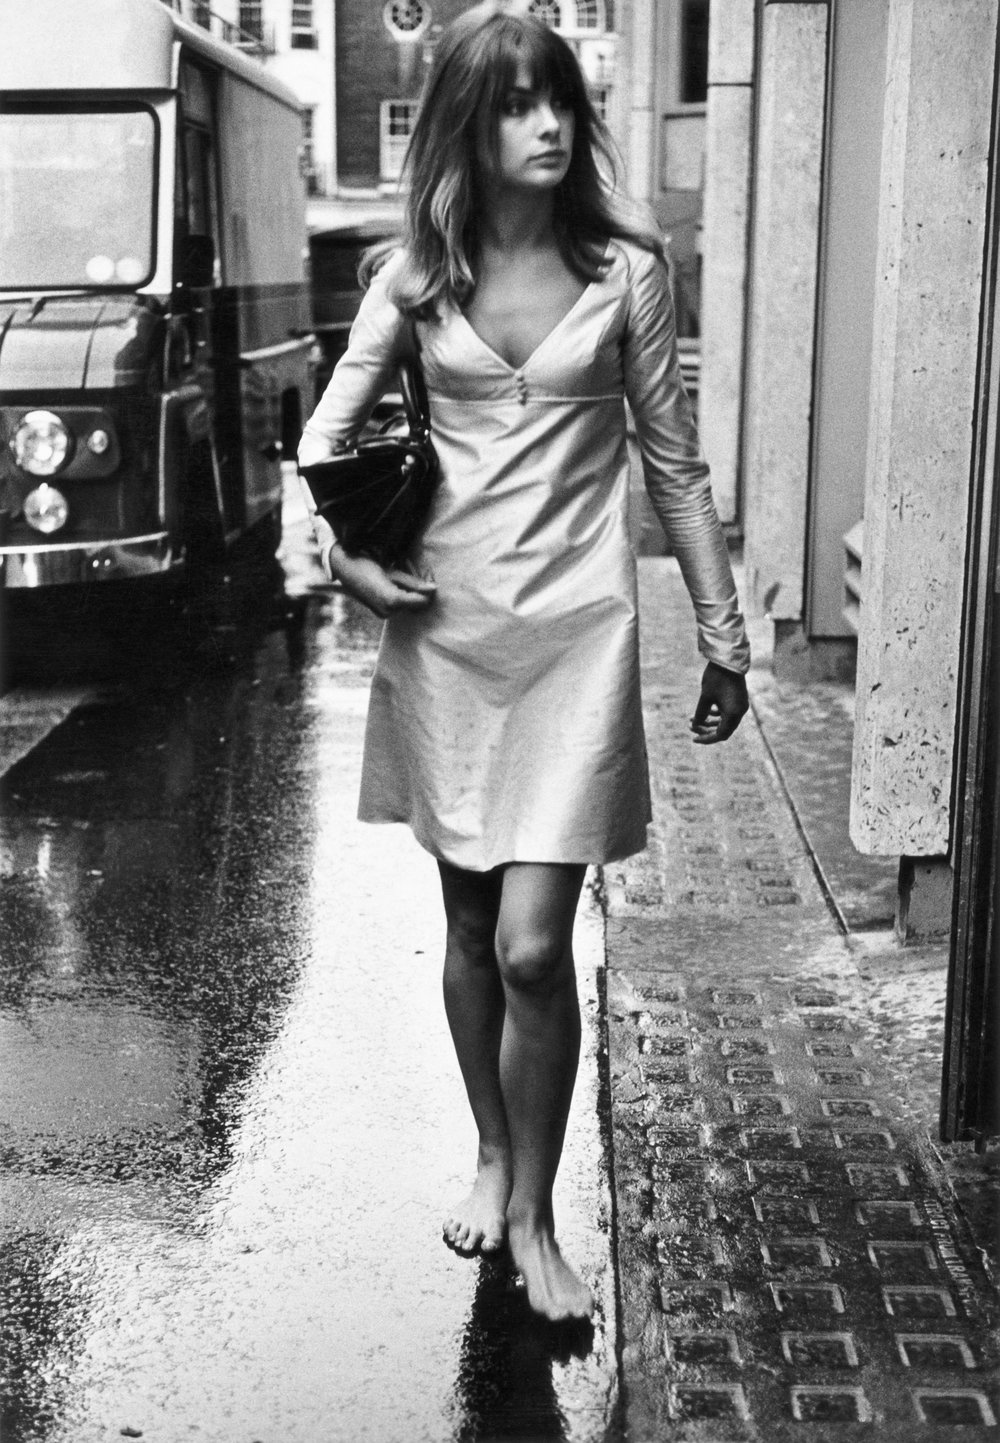 Jean Shrimpton, King's Road in Chelsea, London, 1963 (c) Iconic Images Terry O'Neill